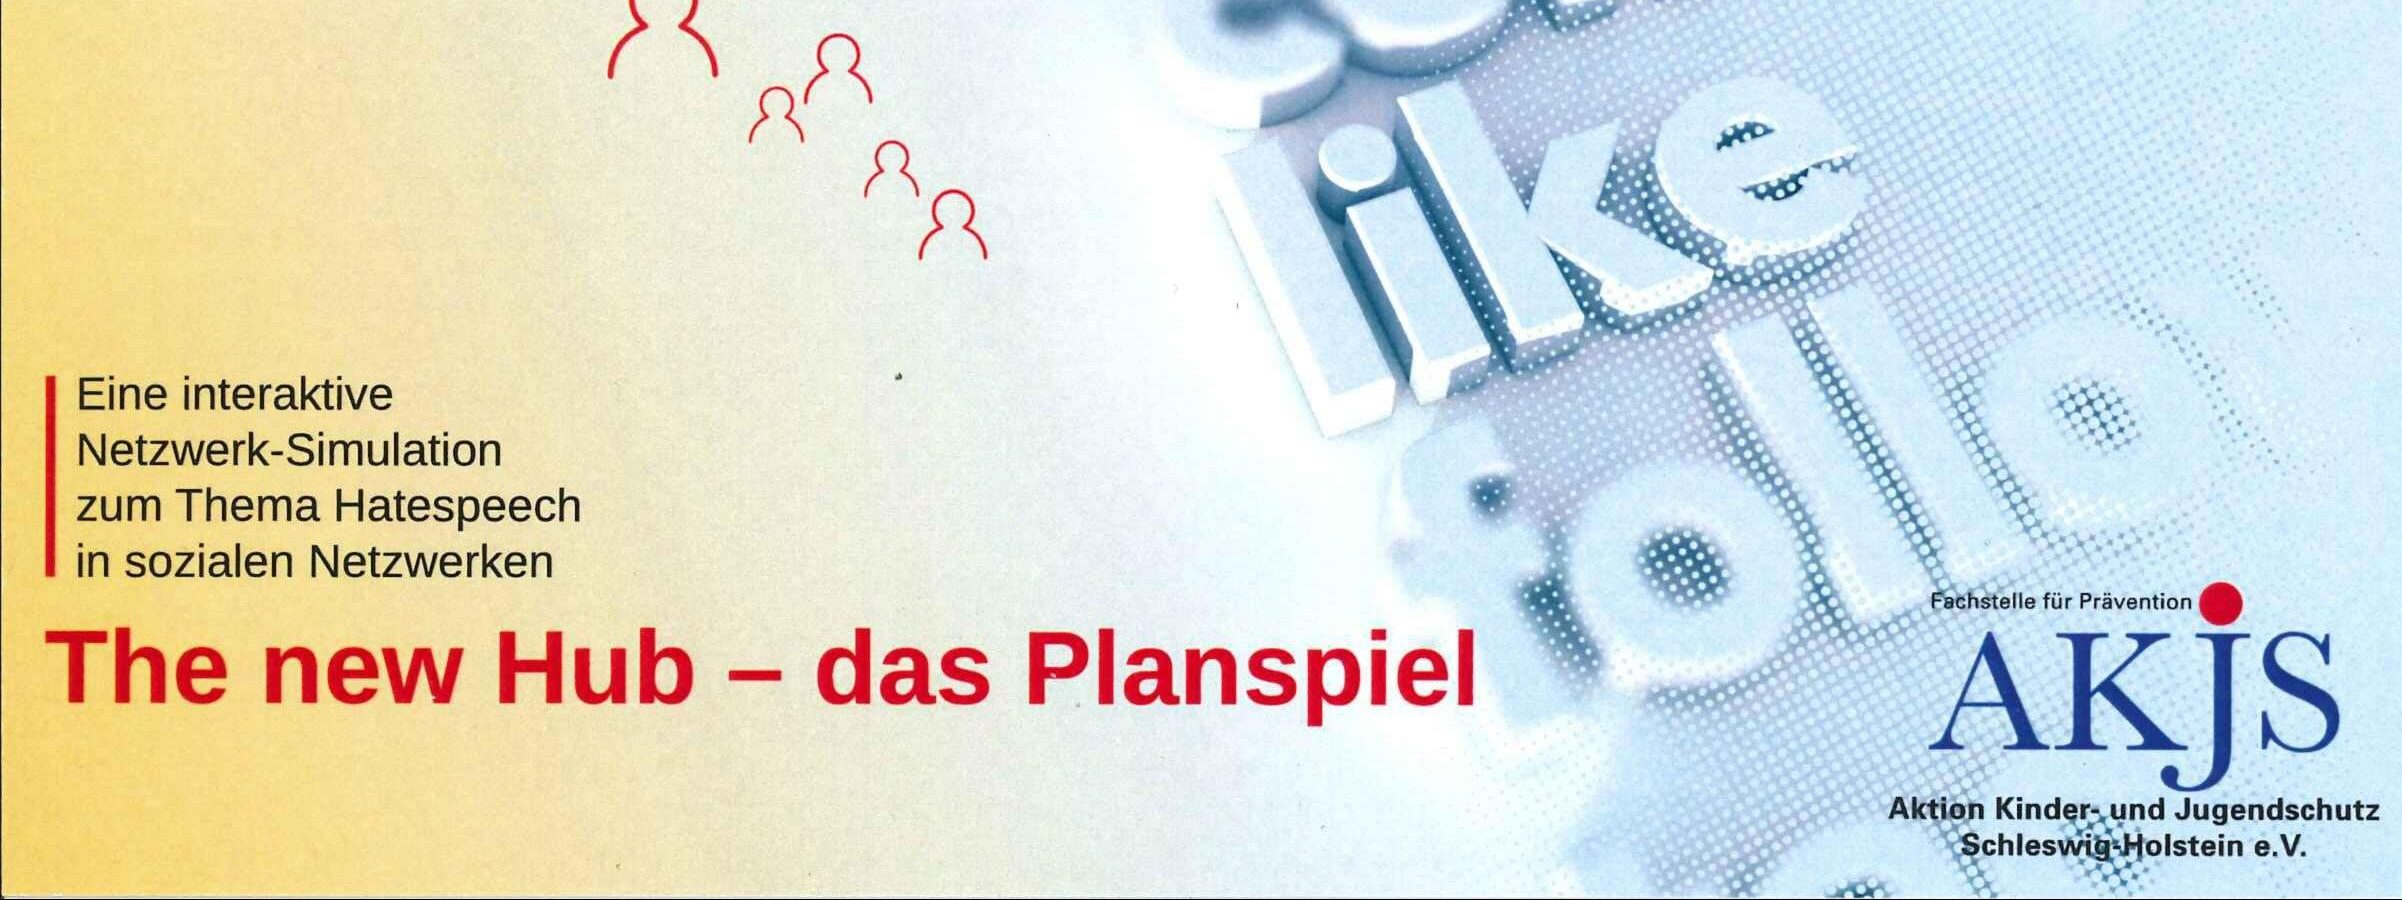 The new Hub – das Planspiel